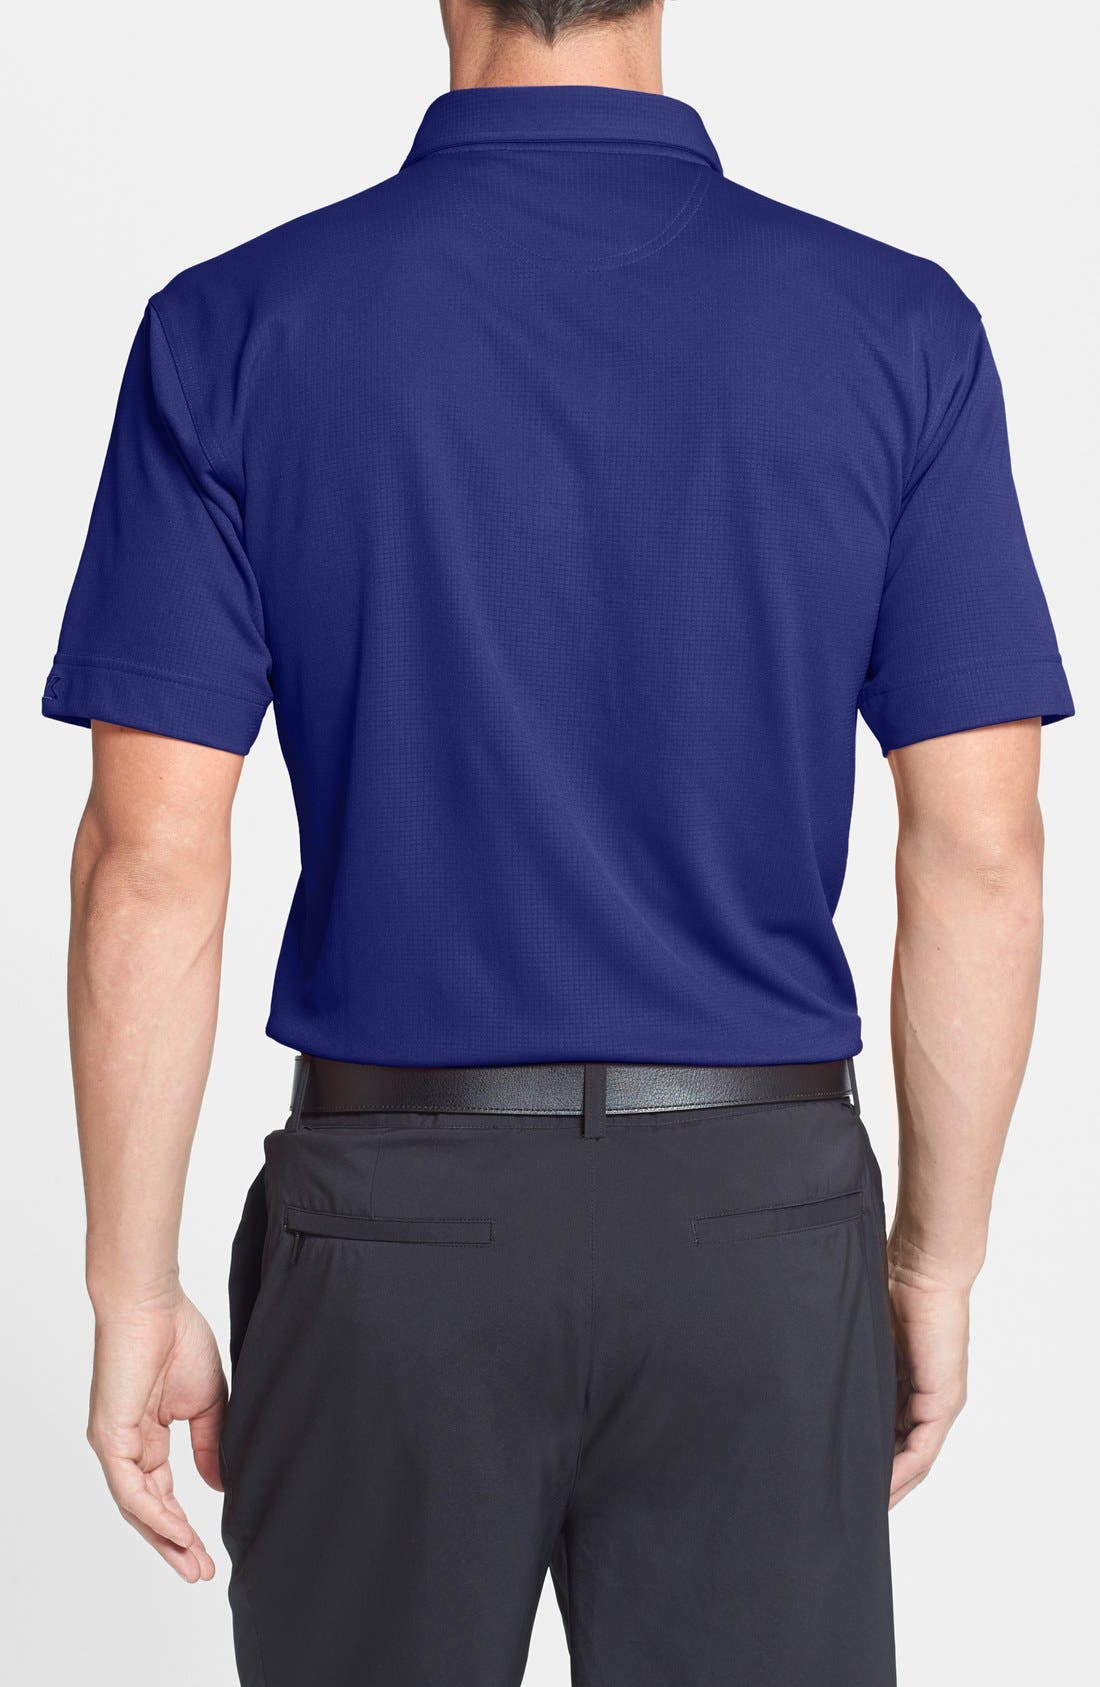 'New York Giants - Genre' DryTec Moisture Wicking Polo,                             Alternate thumbnail 2, color,                             462